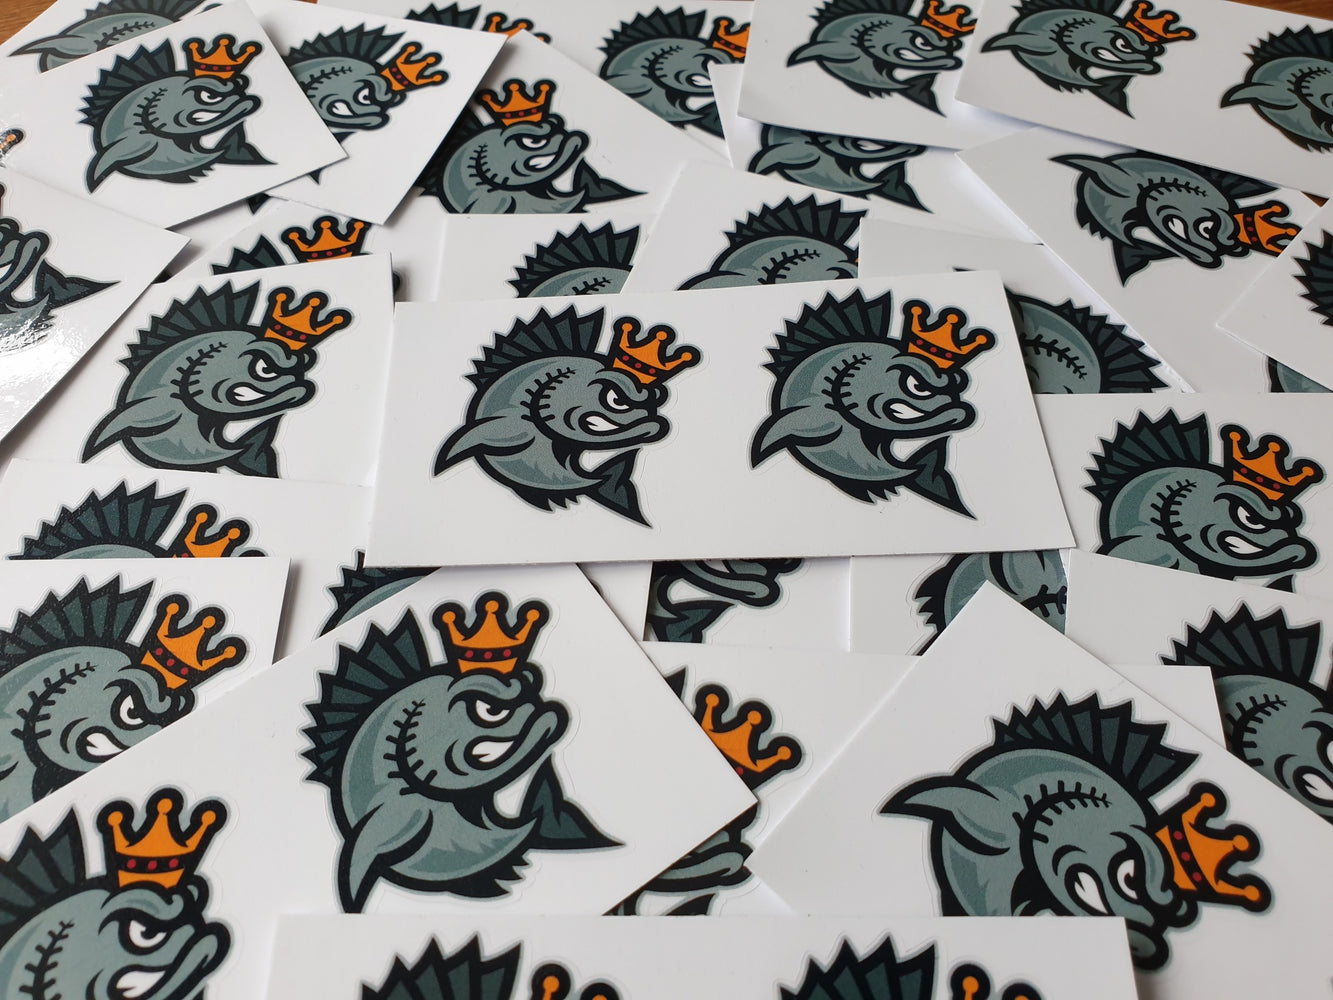 KingTuna Sticker (x2) - Small